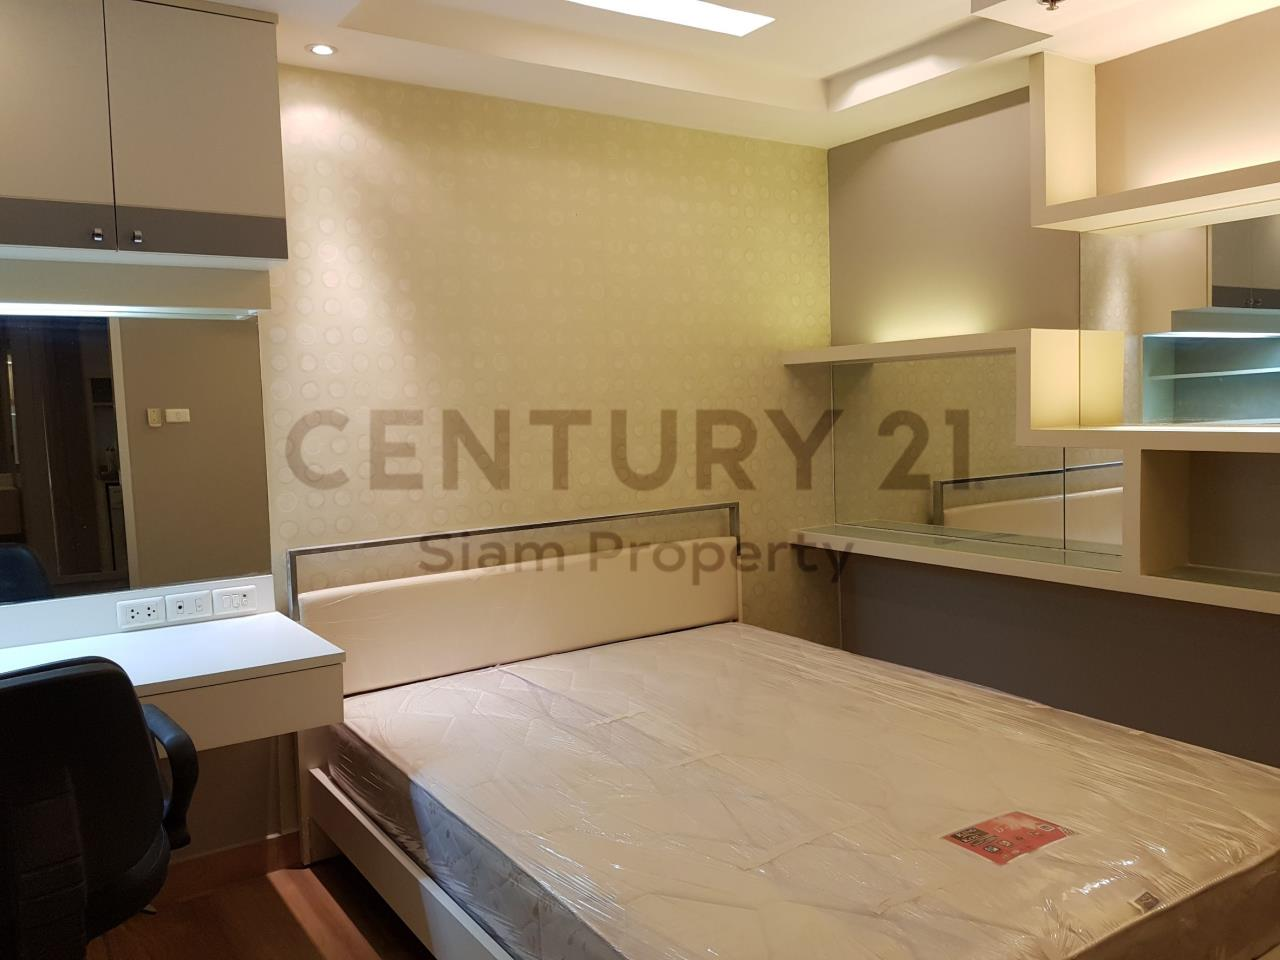 Century21 Siam Property Agency's The Trendy Condominium 14